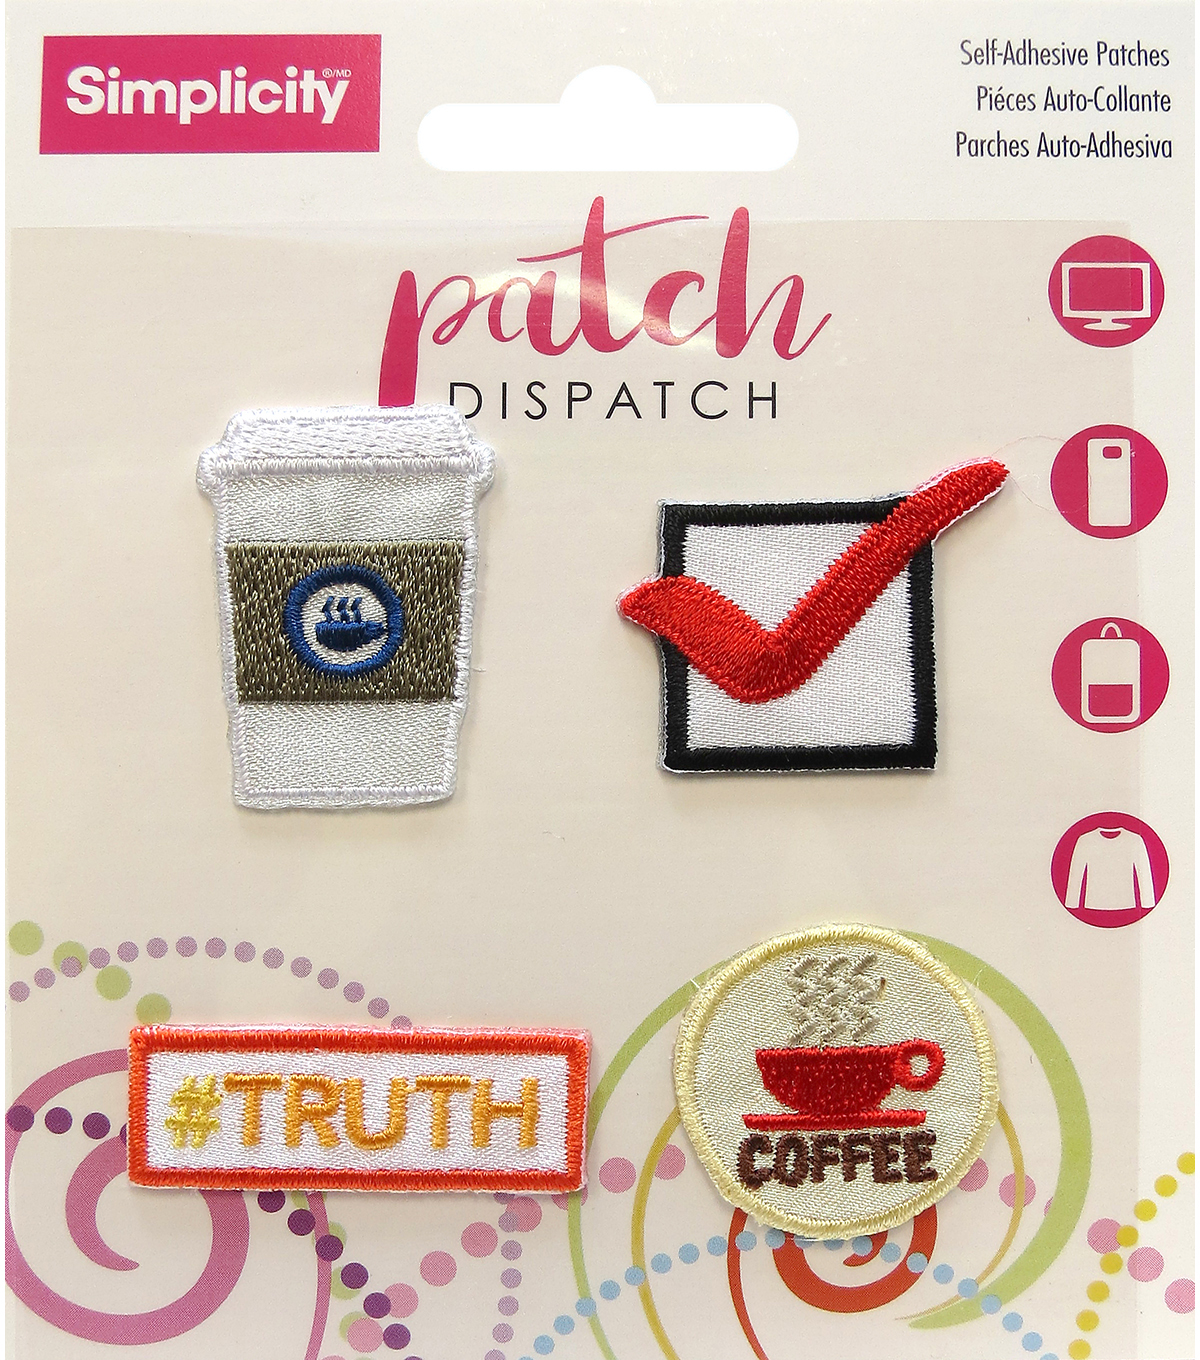 Simplicity® Embroidered Self-Adhesive Patches-Coffee & Check-4 Pack